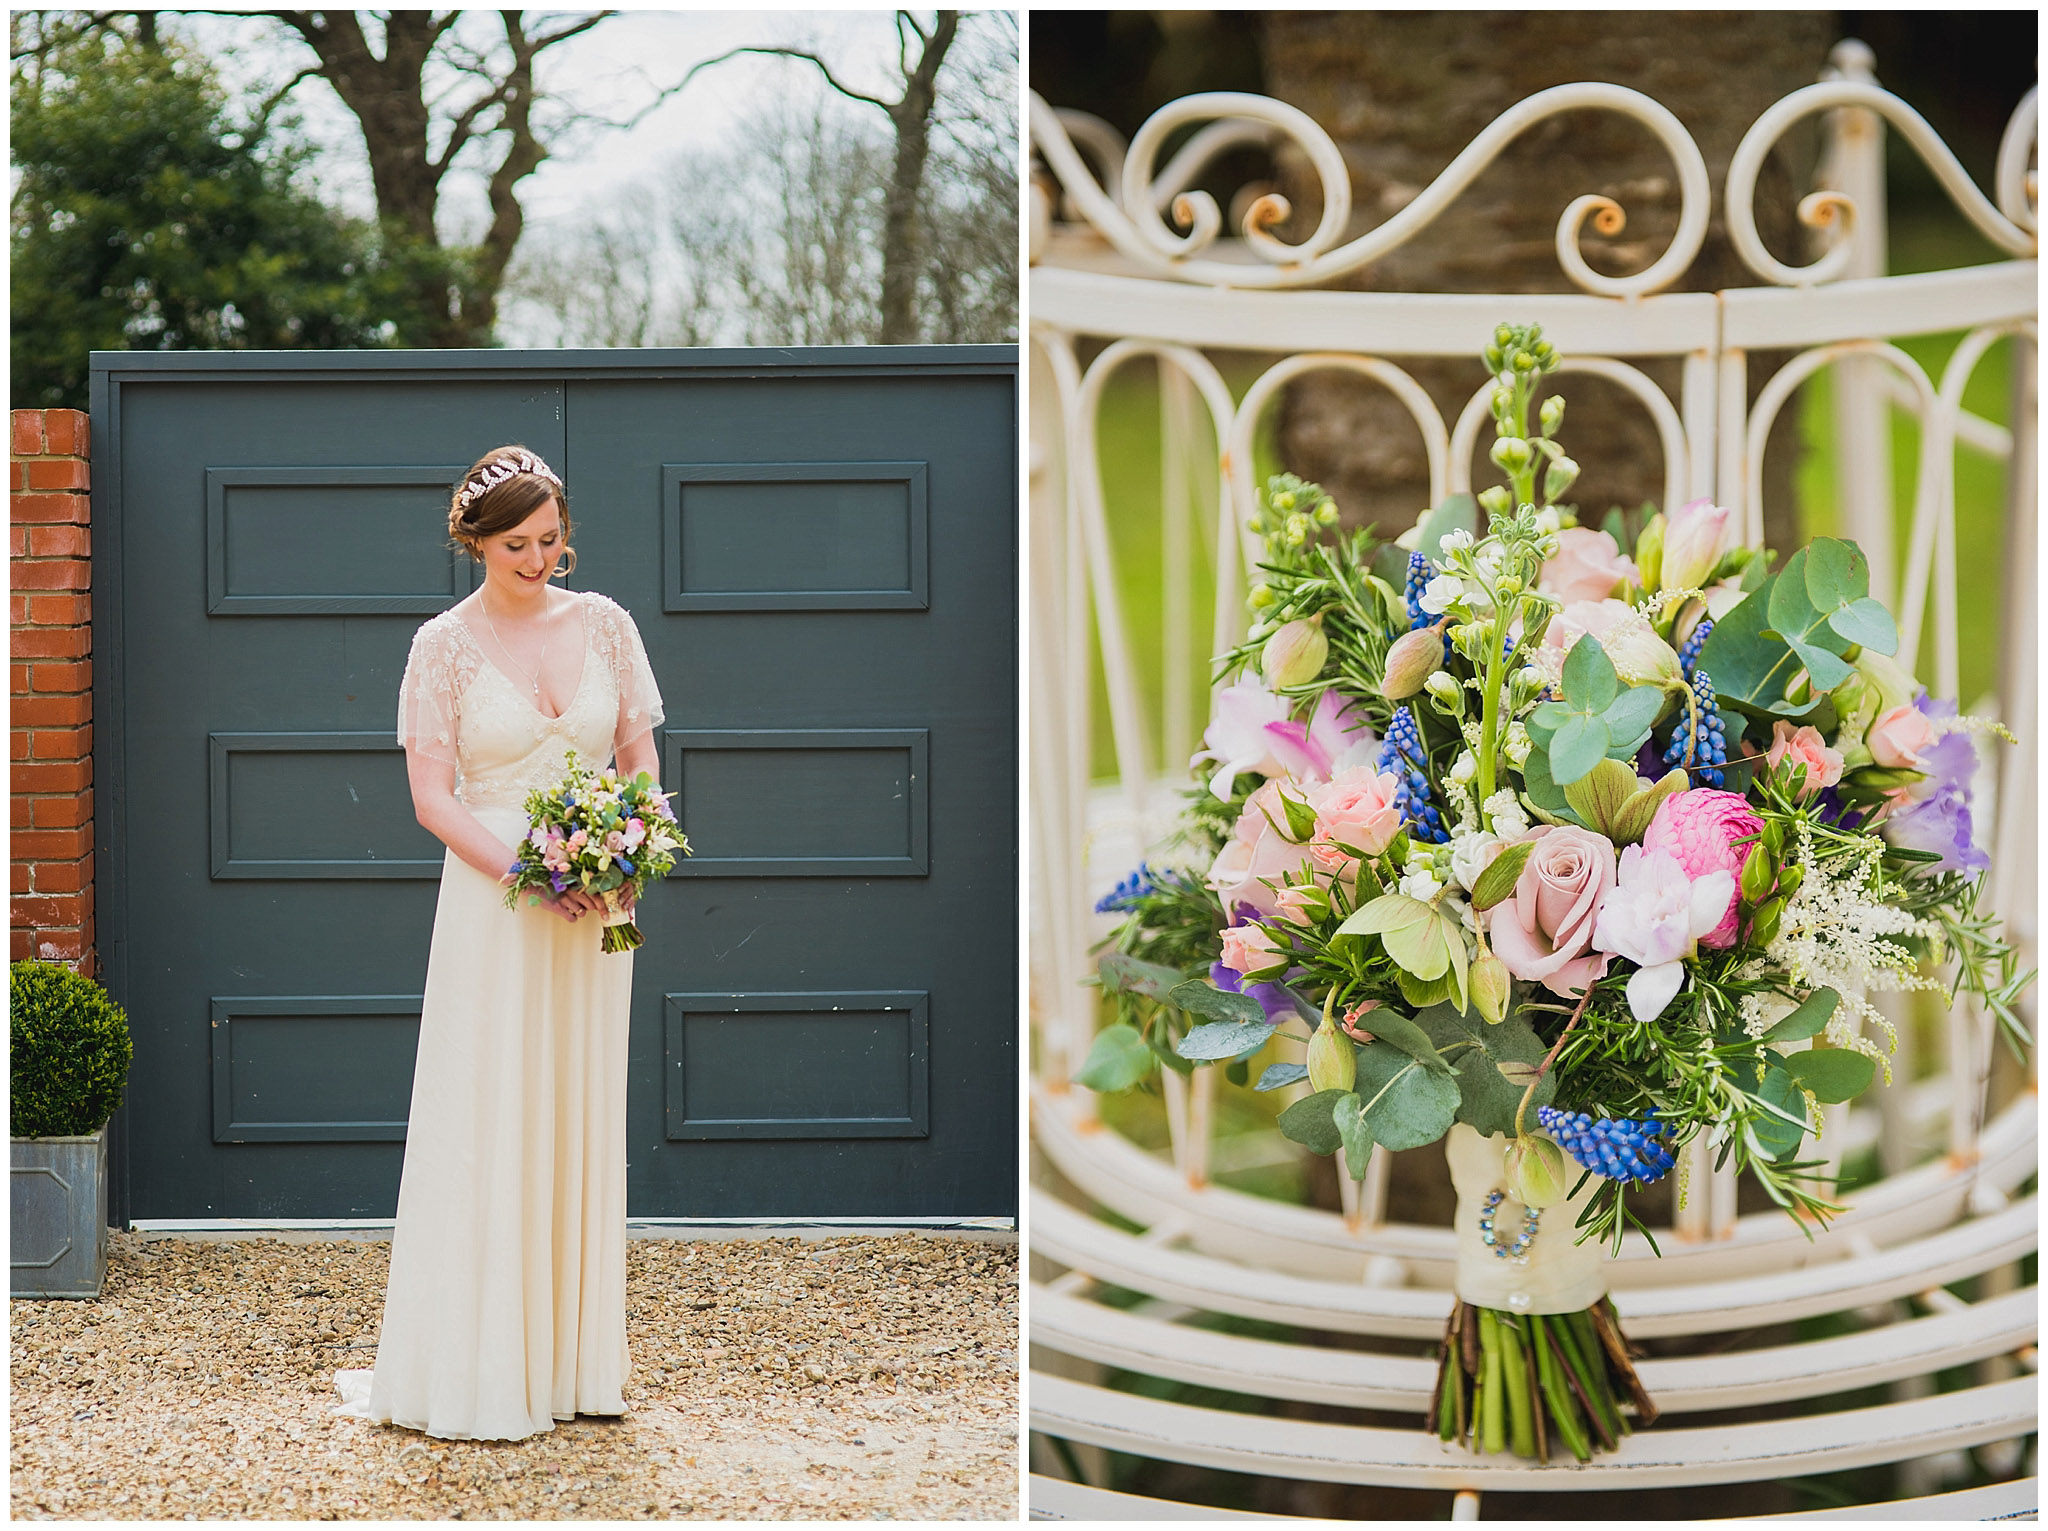 Sarah-&-Dan-The-Old-Vicarage-Wedding-Venue-Dorset-Photographer-11